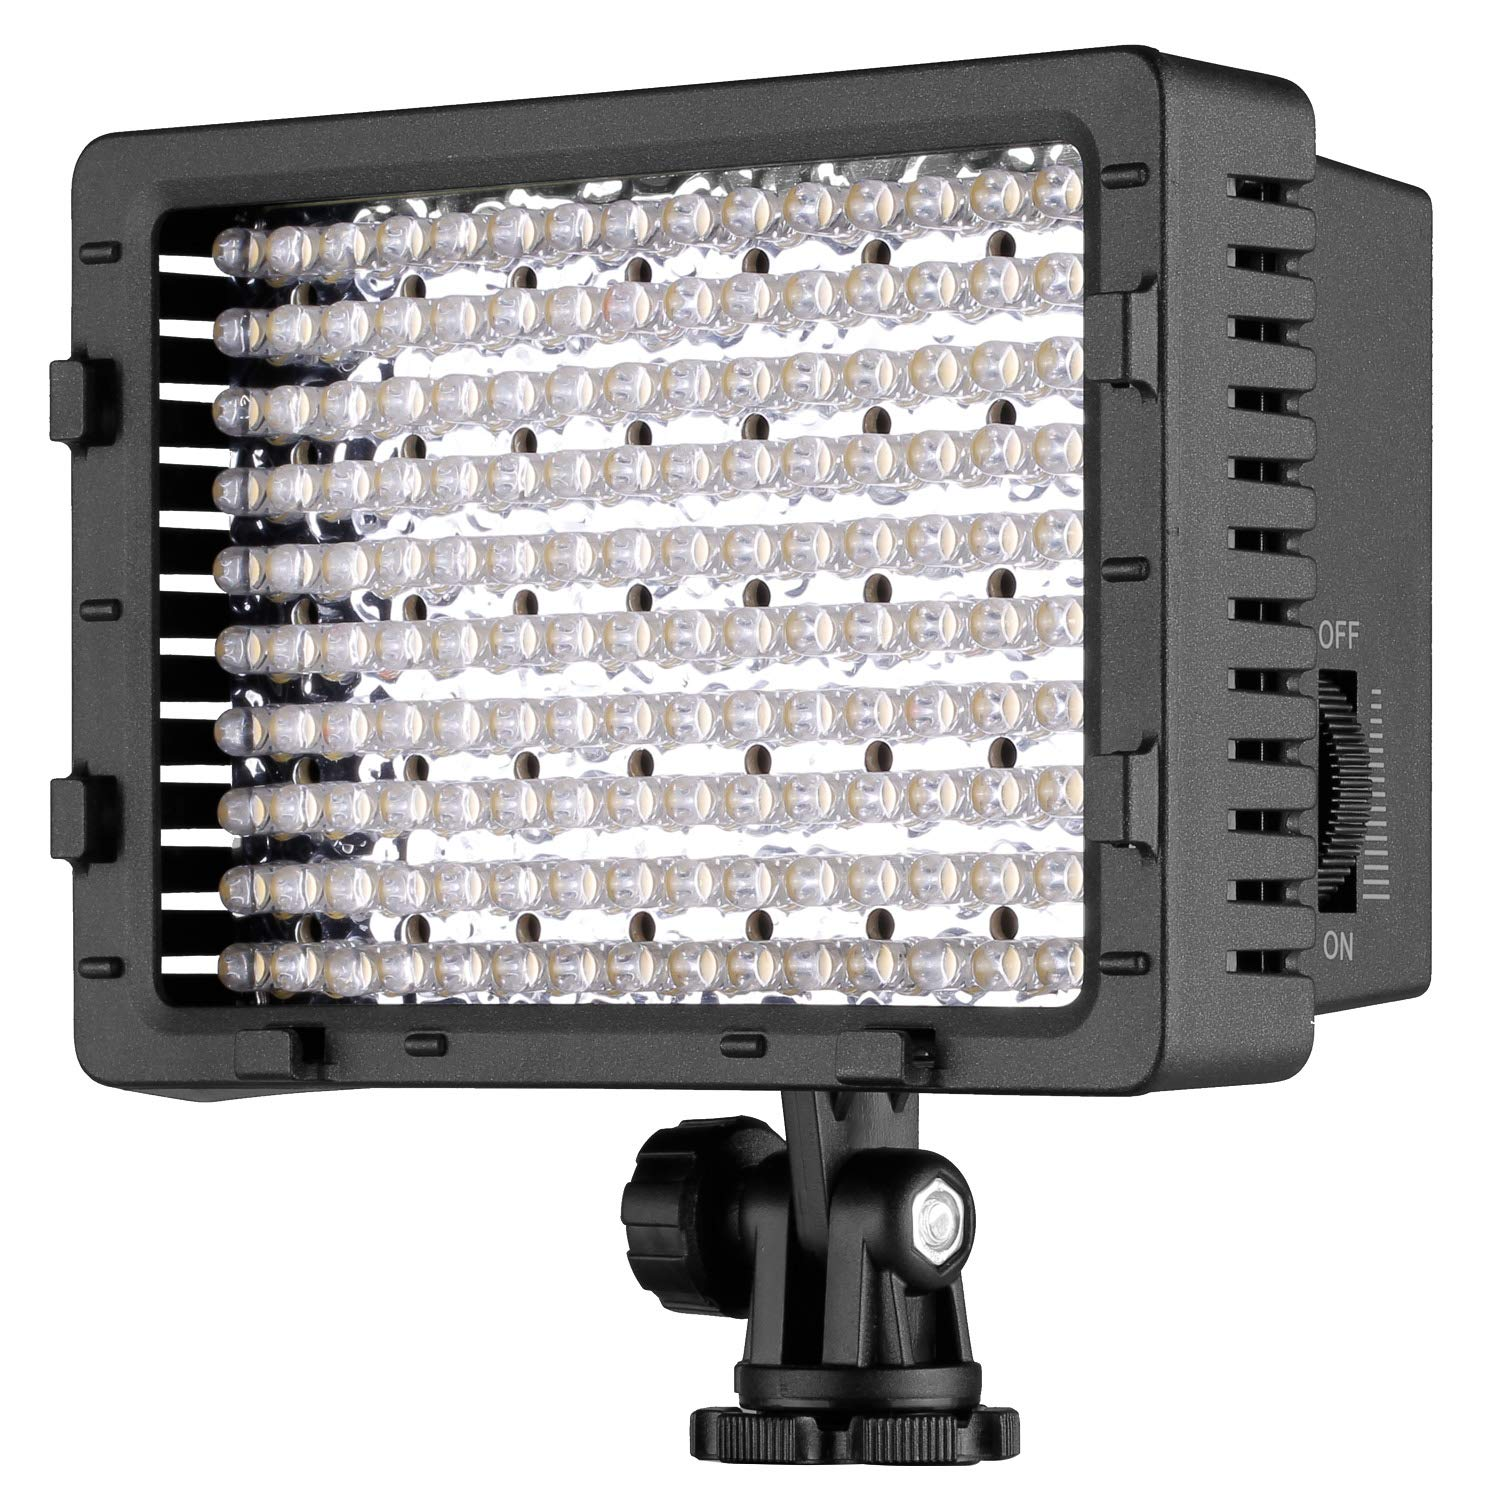 NEEWER 160 LED CN-160 Dimmable Ultra High Power Panel Digital Camera / Camcorder Video Light, LED Light for Canon, Nikon, Pentax, Panasonic,SONY, Samsung and Olympus Digital SLR Cameras by Neewer